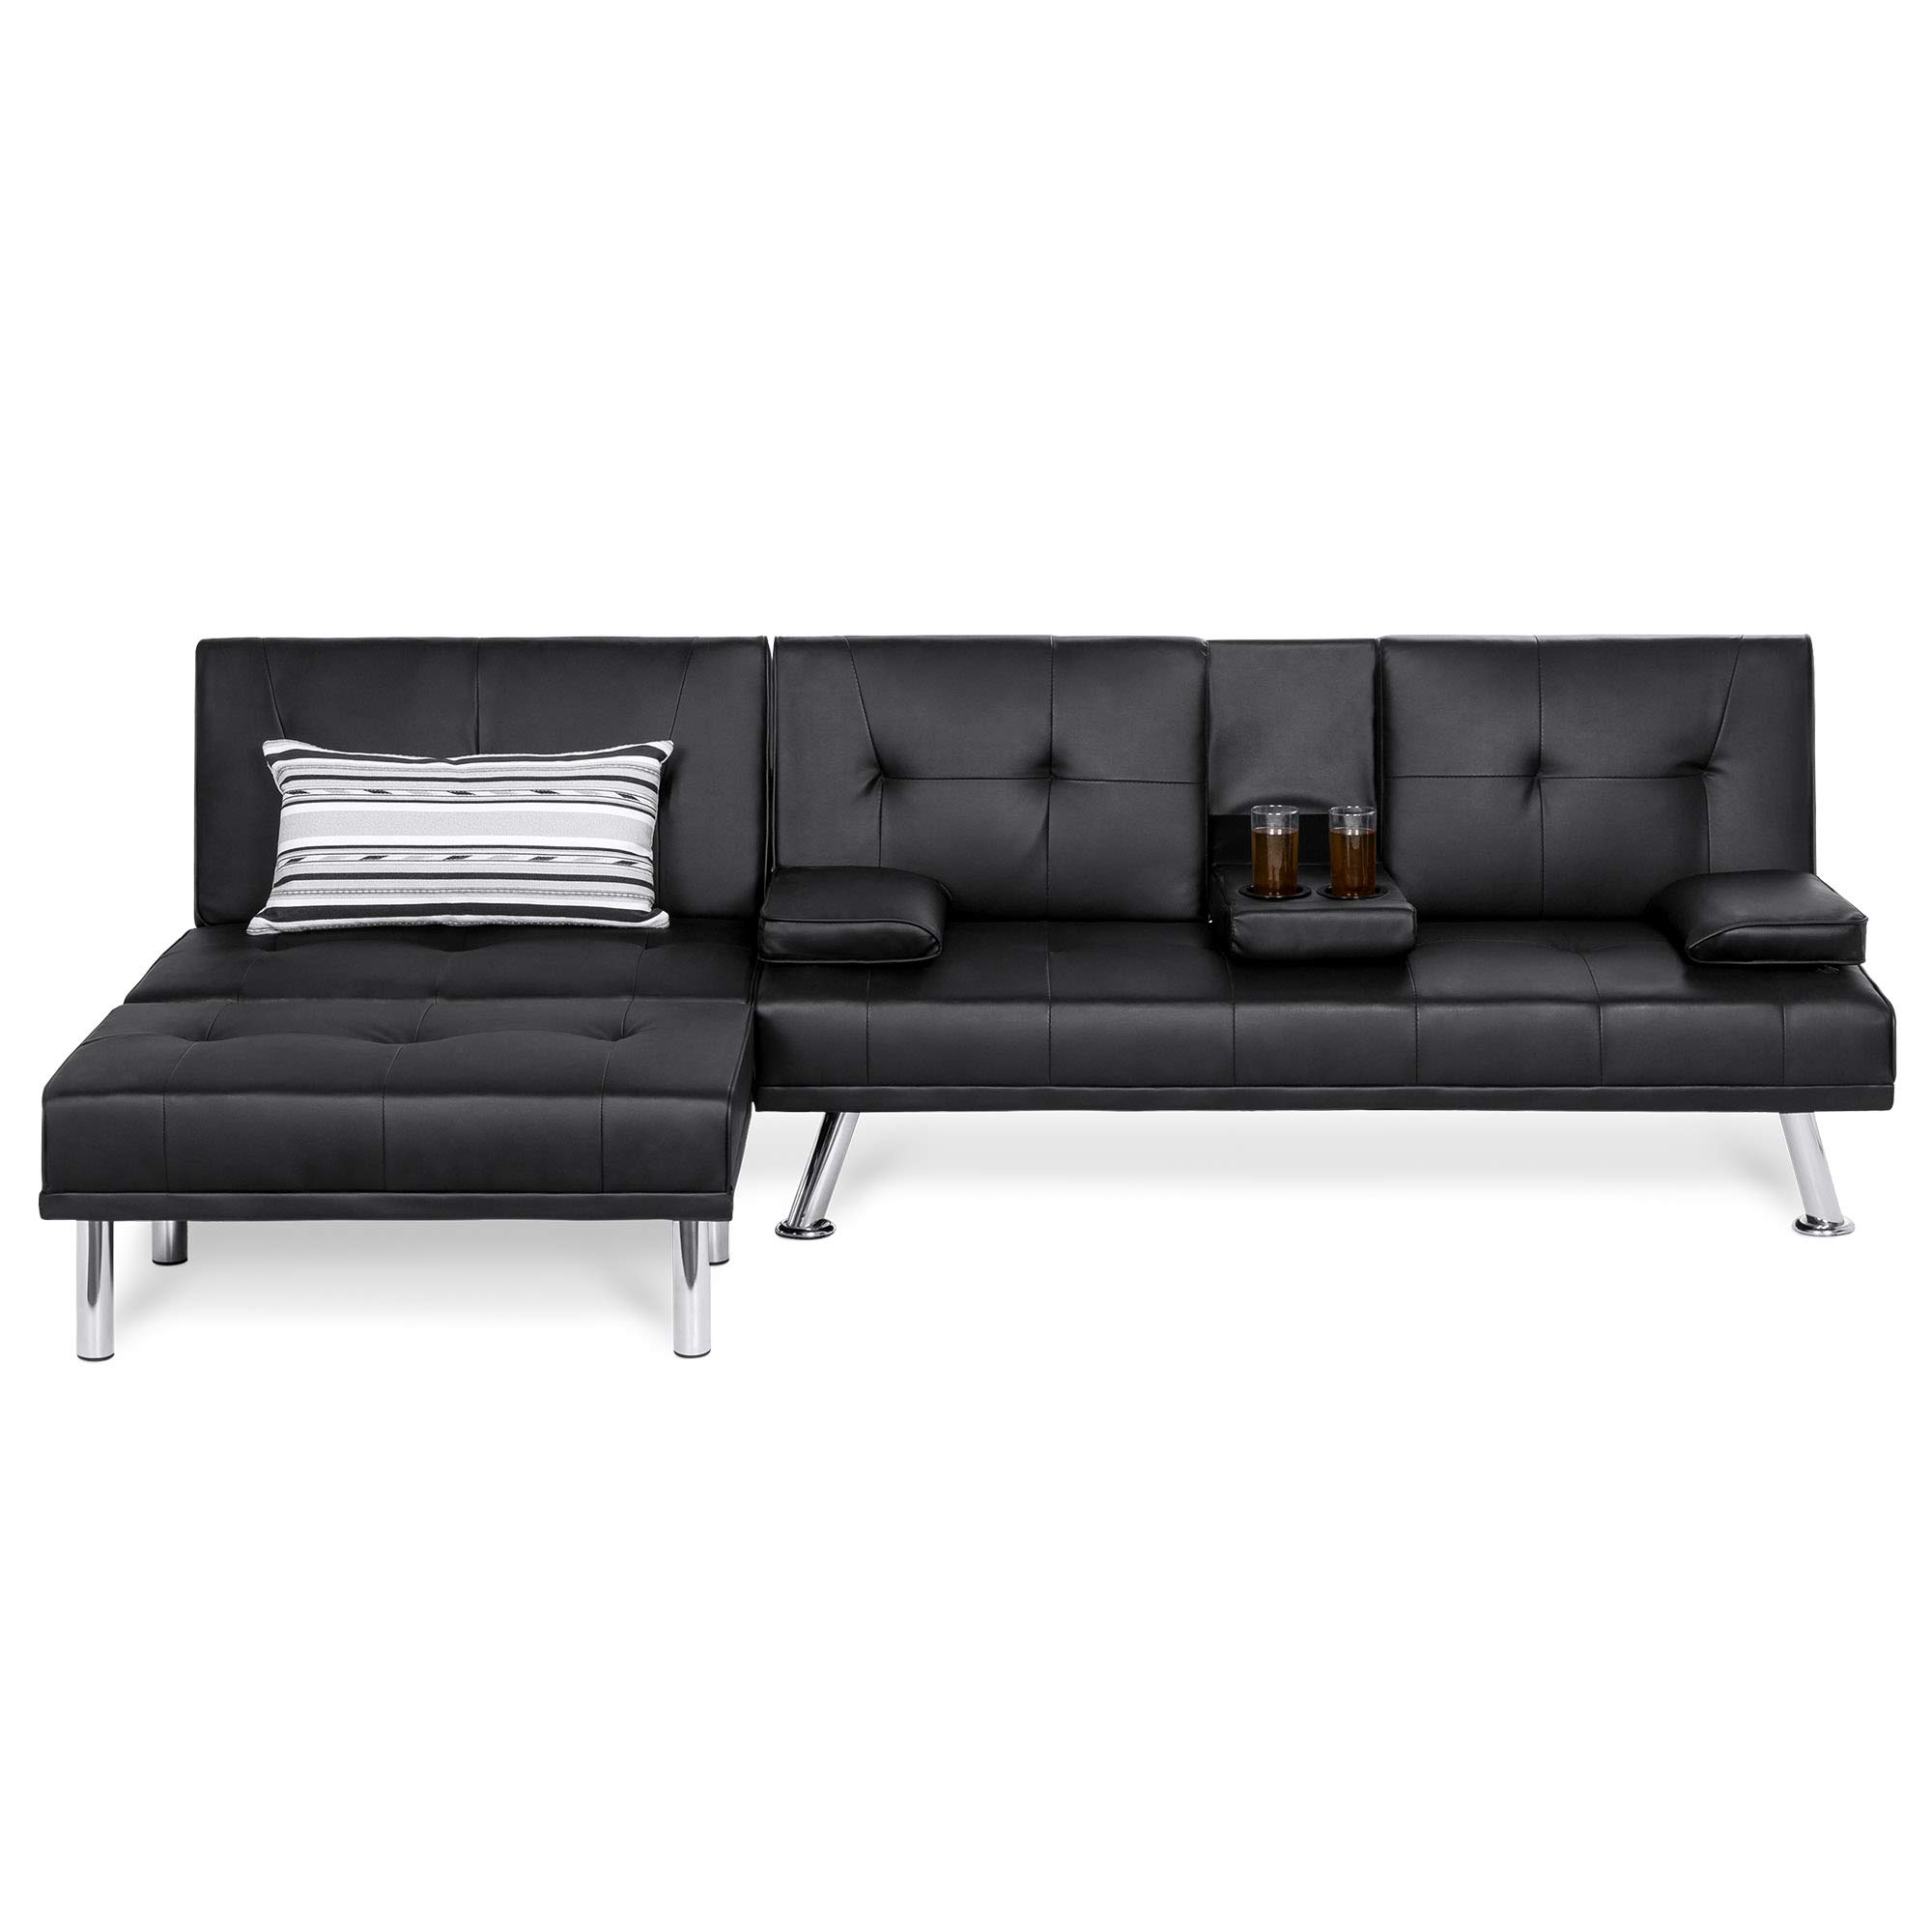 Sensational Details About 3 Piece Leather Modular Living Room Sectional Set Sleeper Sofa Bed Double Futon Gmtry Best Dining Table And Chair Ideas Images Gmtryco